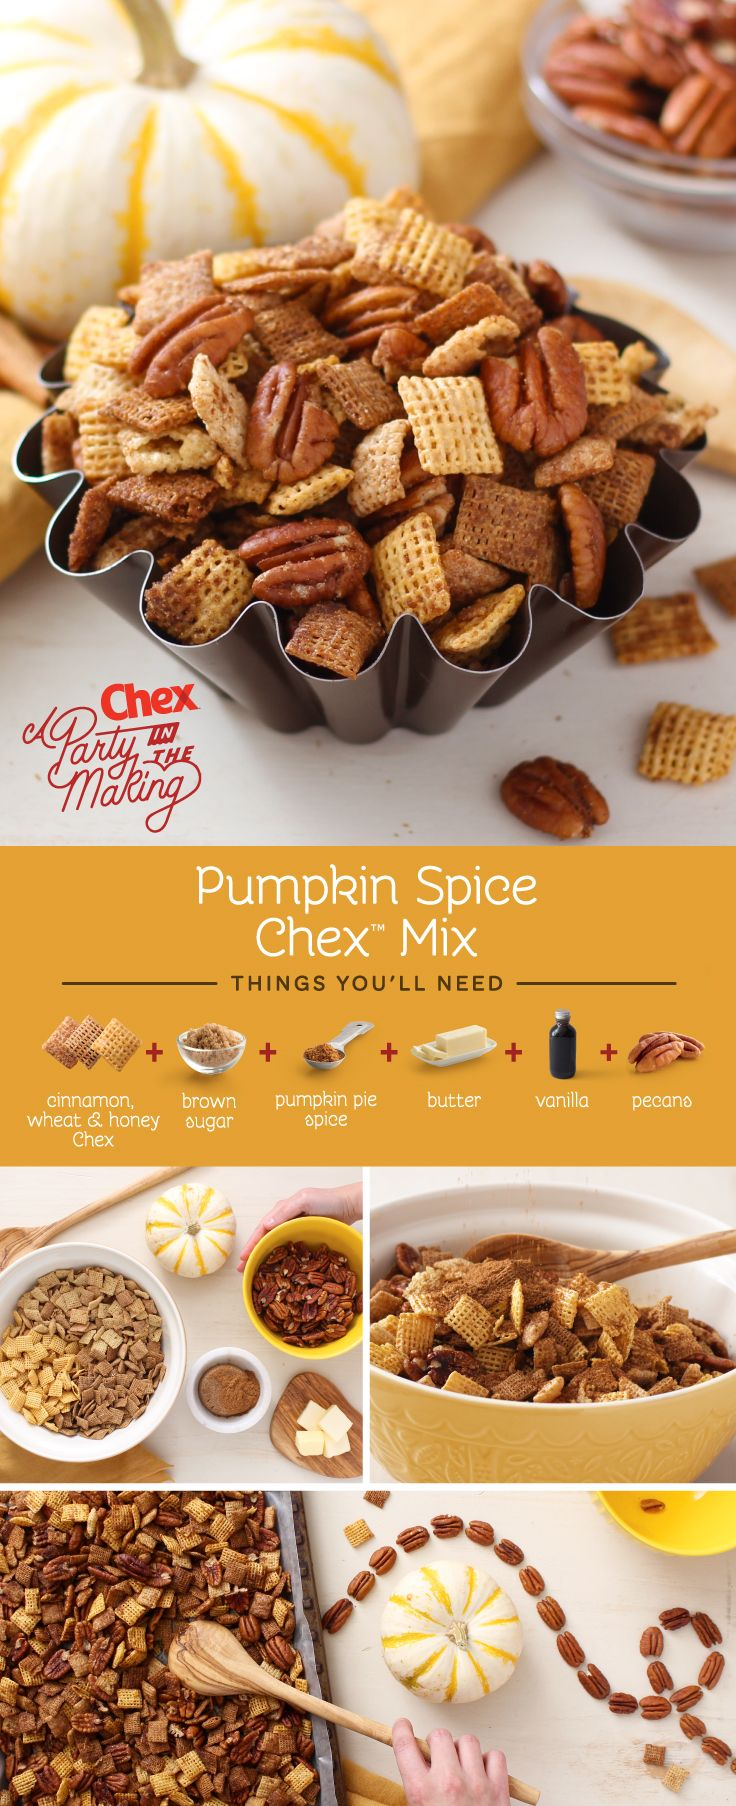 Don't limit pumpkin spice to lattes! Homemade Pumpkin Spice Chex Mix has all the fall flavor you love with brown sugar and nutty pecans, and it's a perfect snack for a Girl's Night In or Friendsgiving potluck.